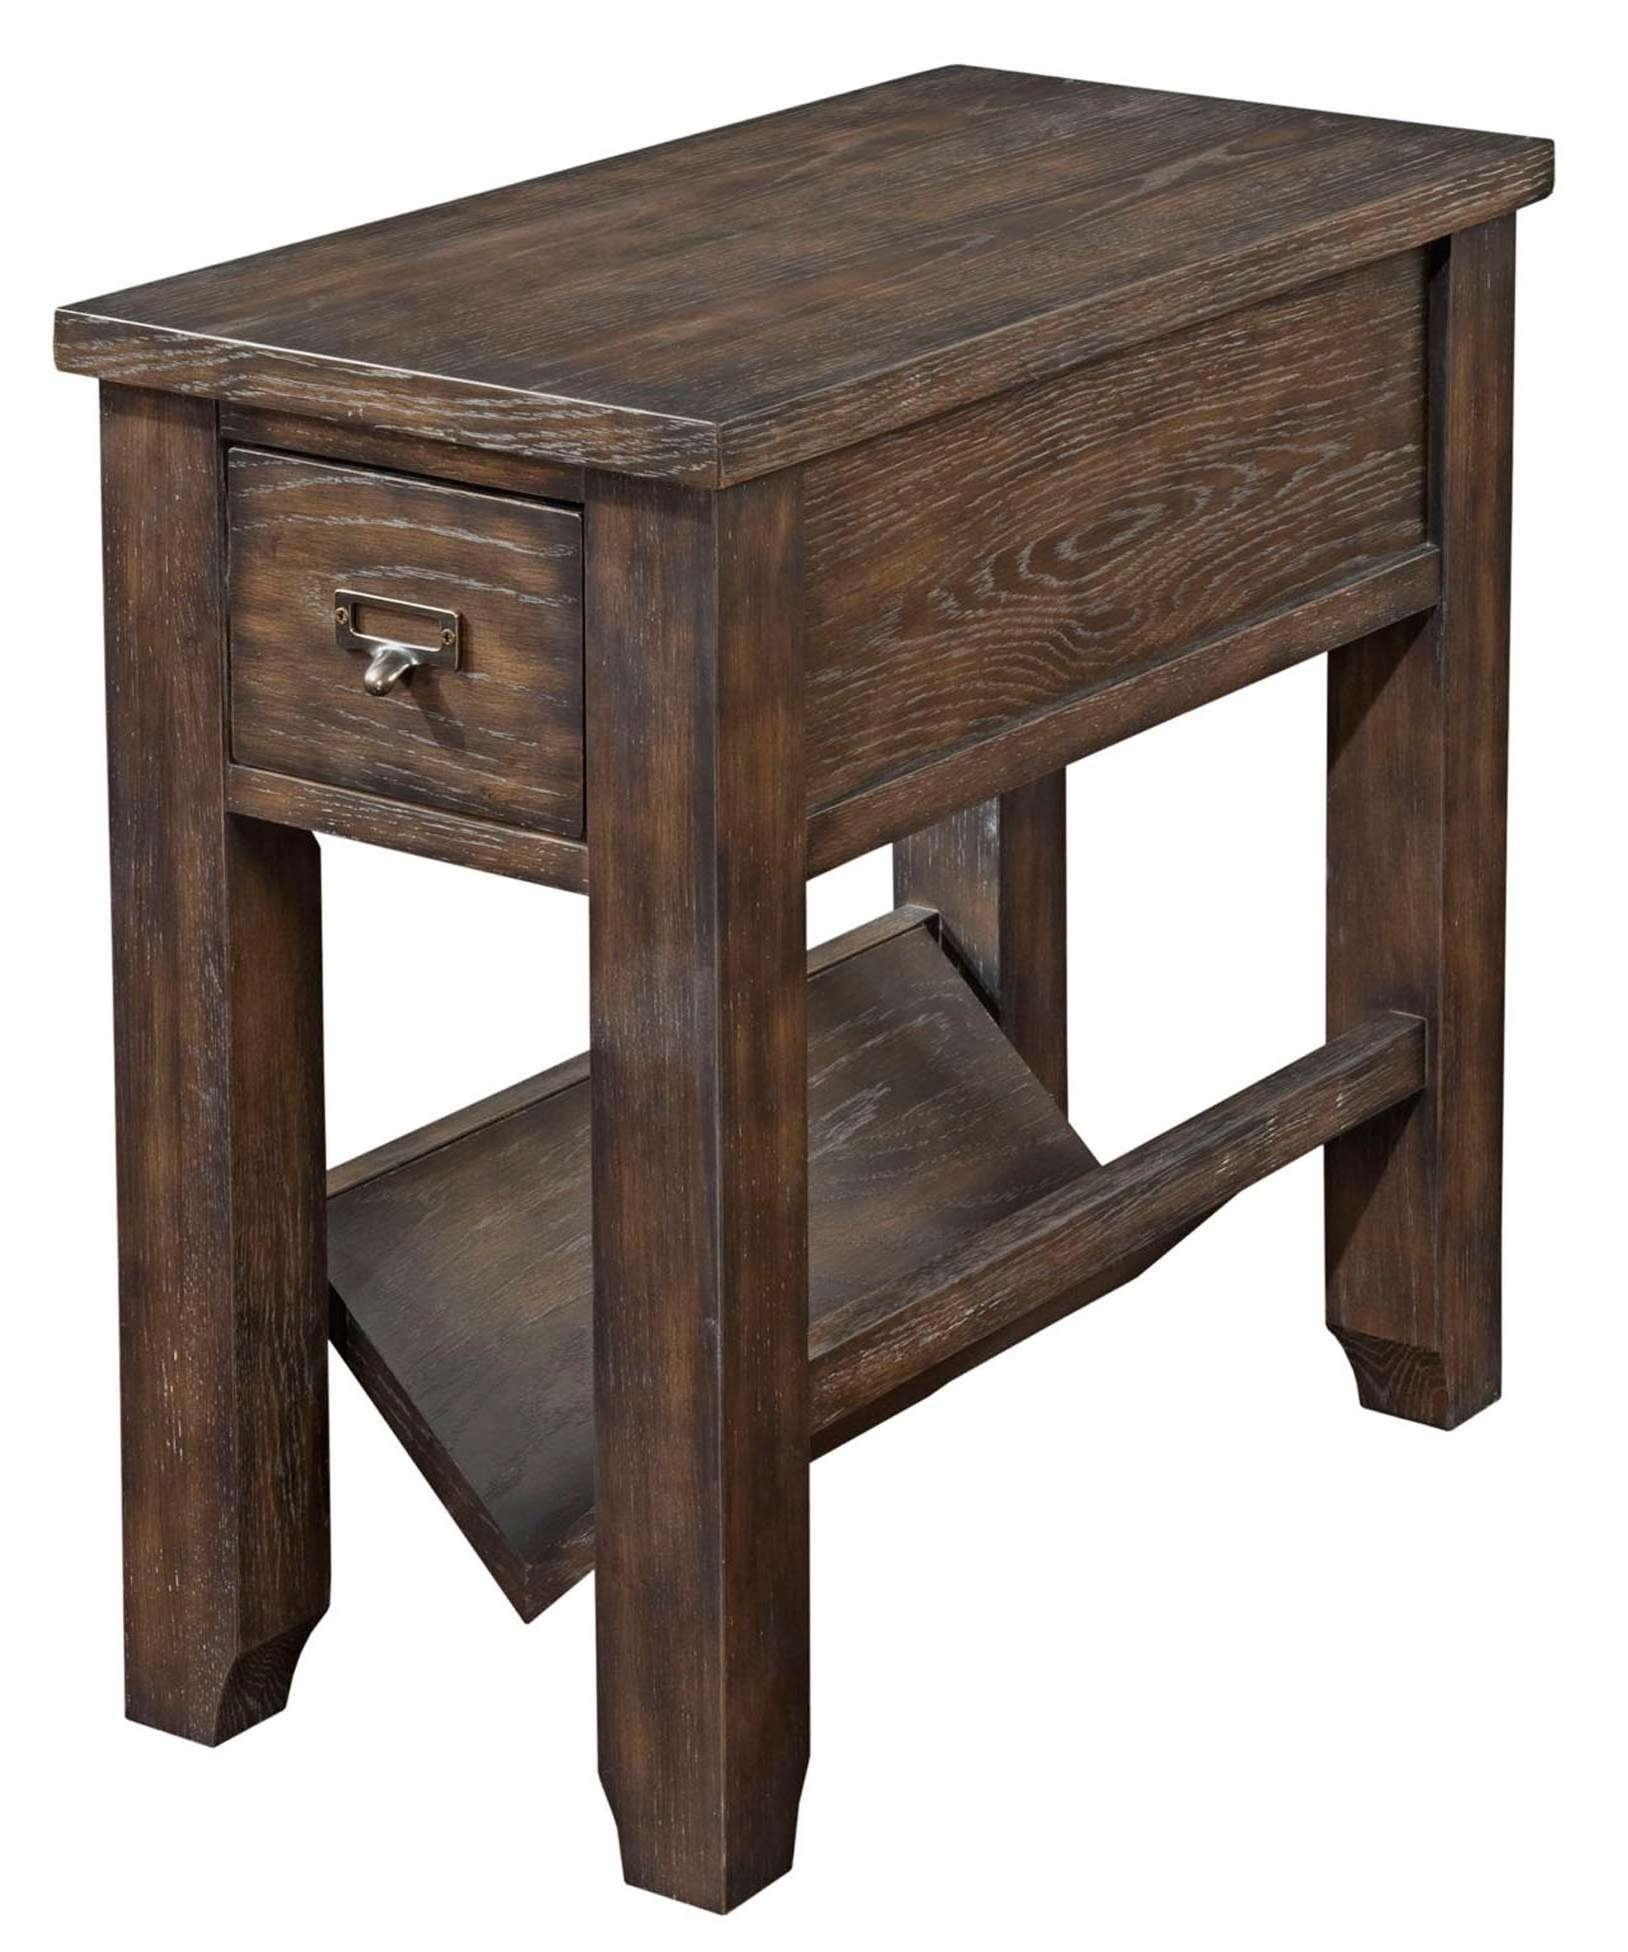 Broyhill Furniture Attic Retreat Rustic Style Chairside Table With Inside Popular Coffee Tables With Magazine Storage (View 17 of 20)